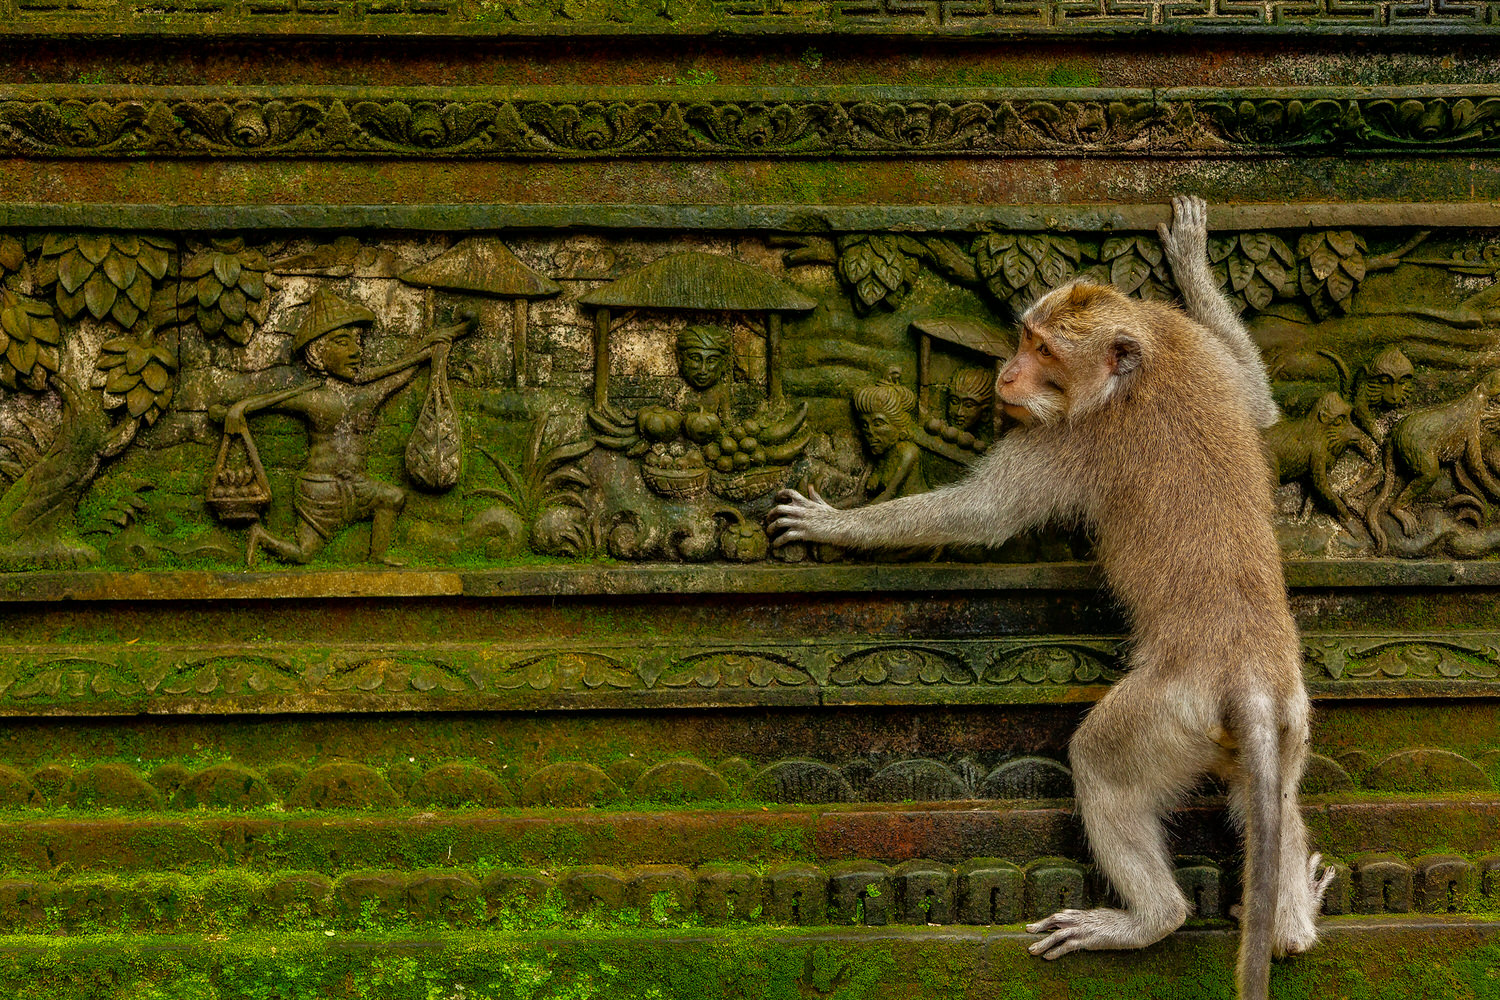 A    monkey    climbs up a carved wall, featuring scenes of traditional village life, in the    Monkey Forest    in    Ubud, Bali   .